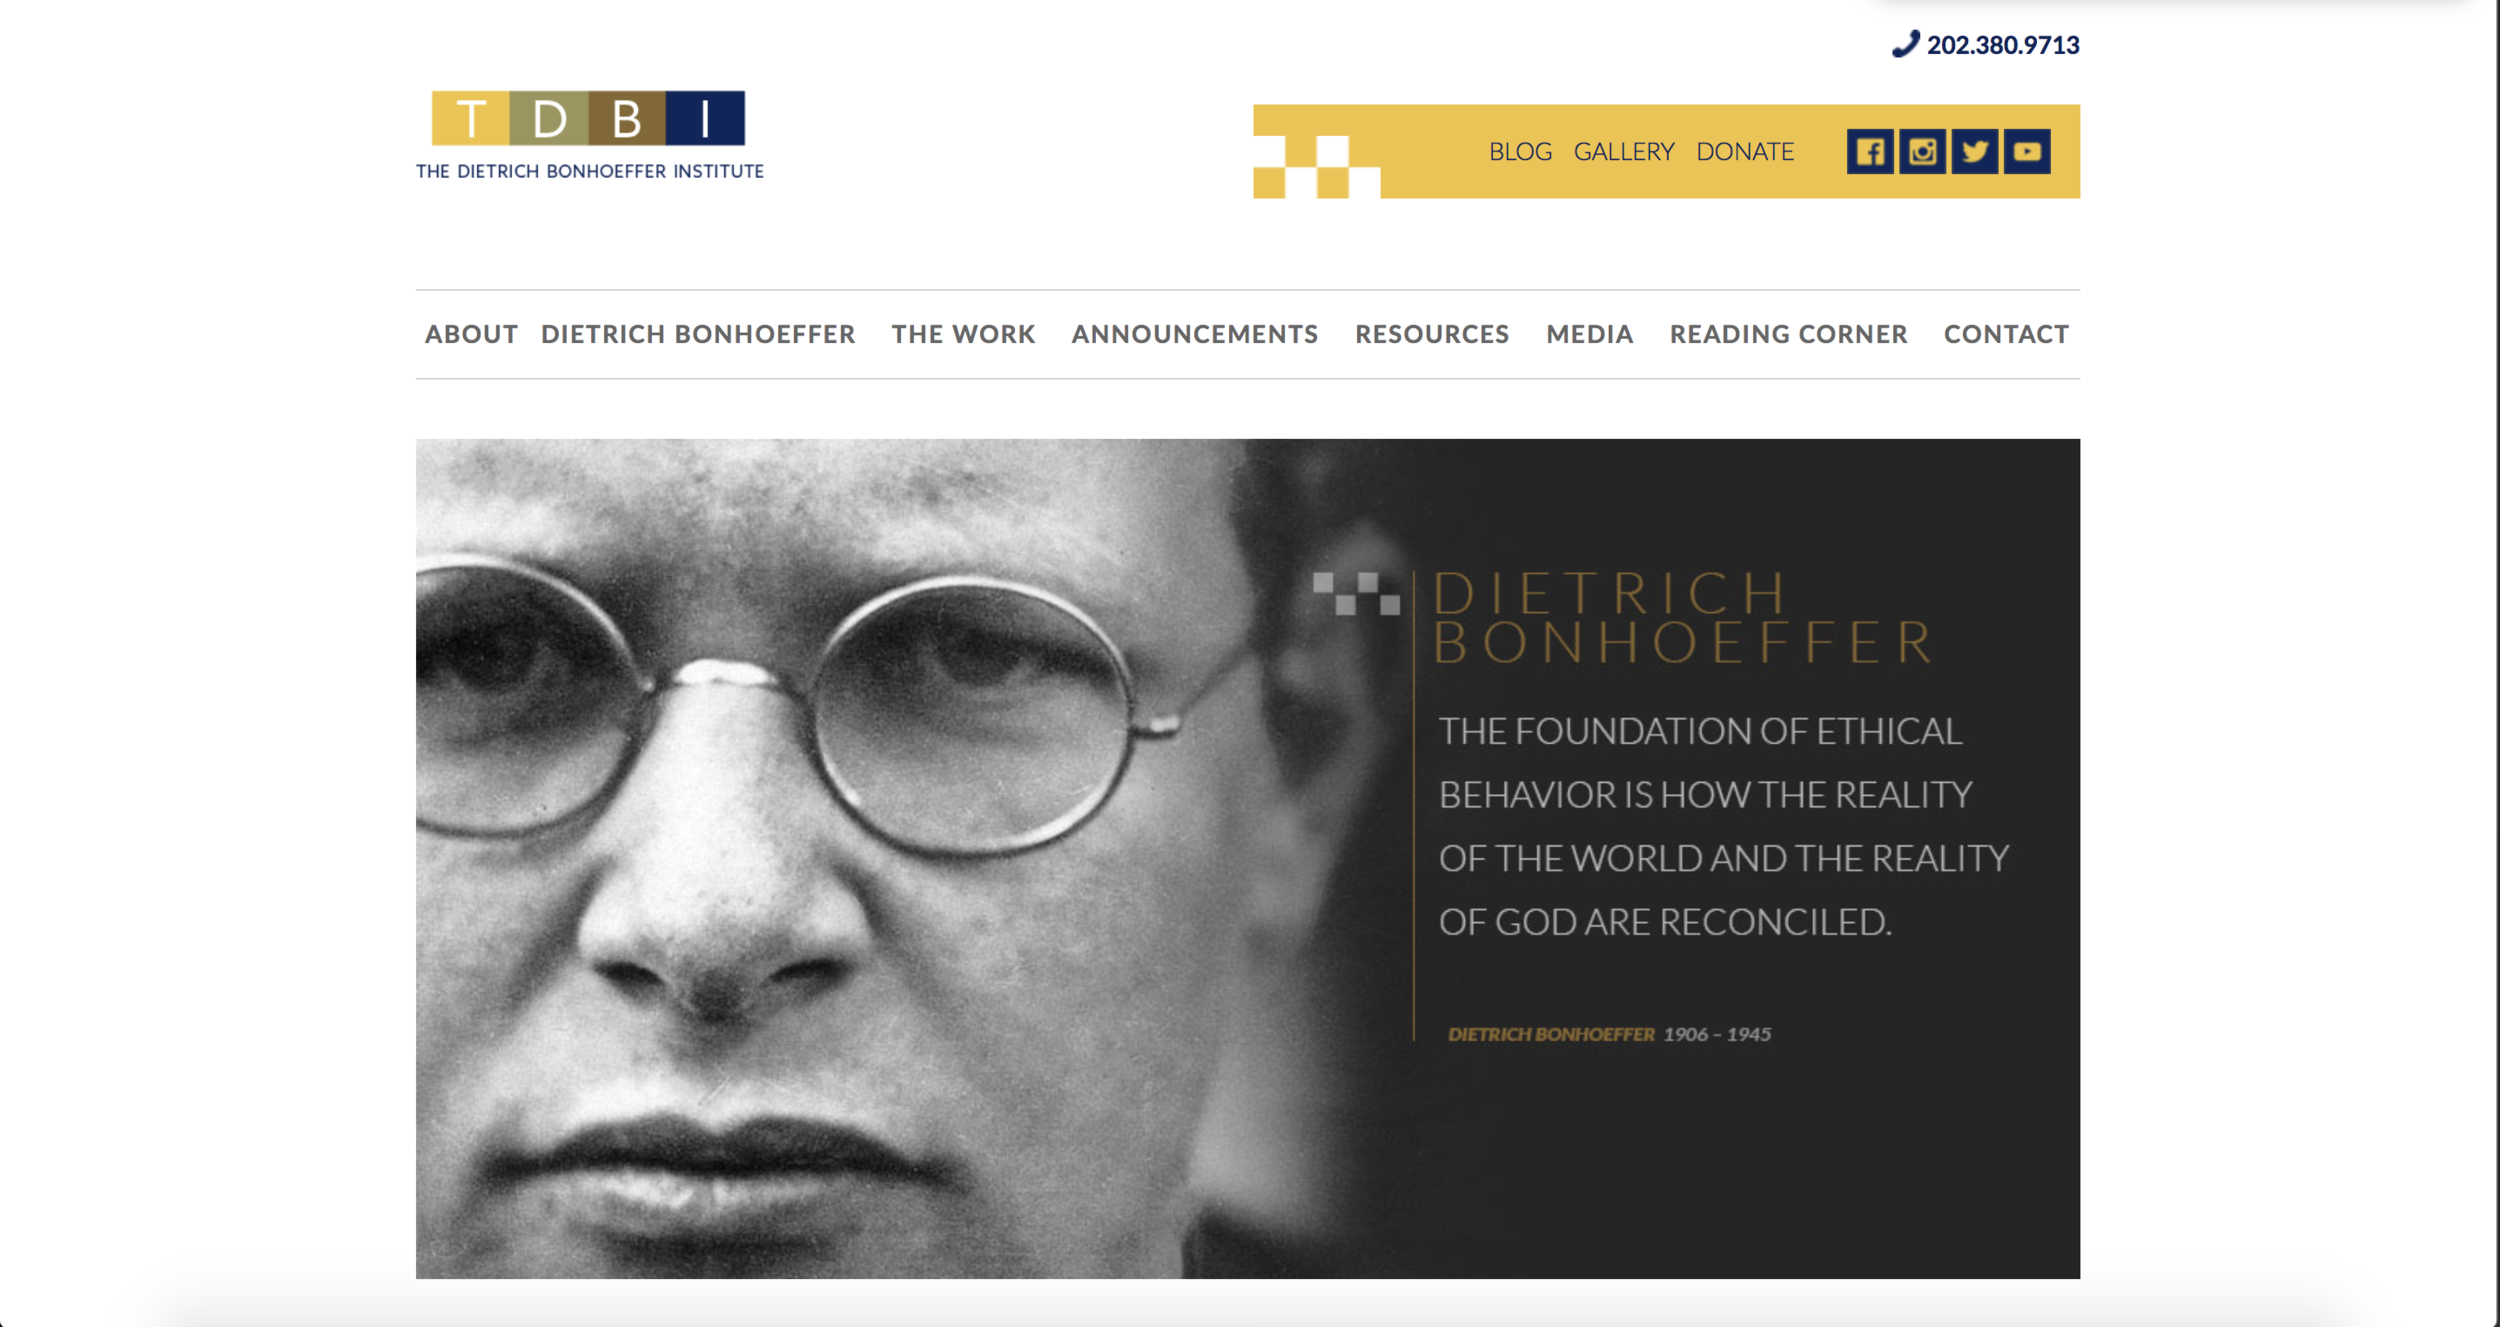 The Dietrich Bonhoeffer Institute: Website